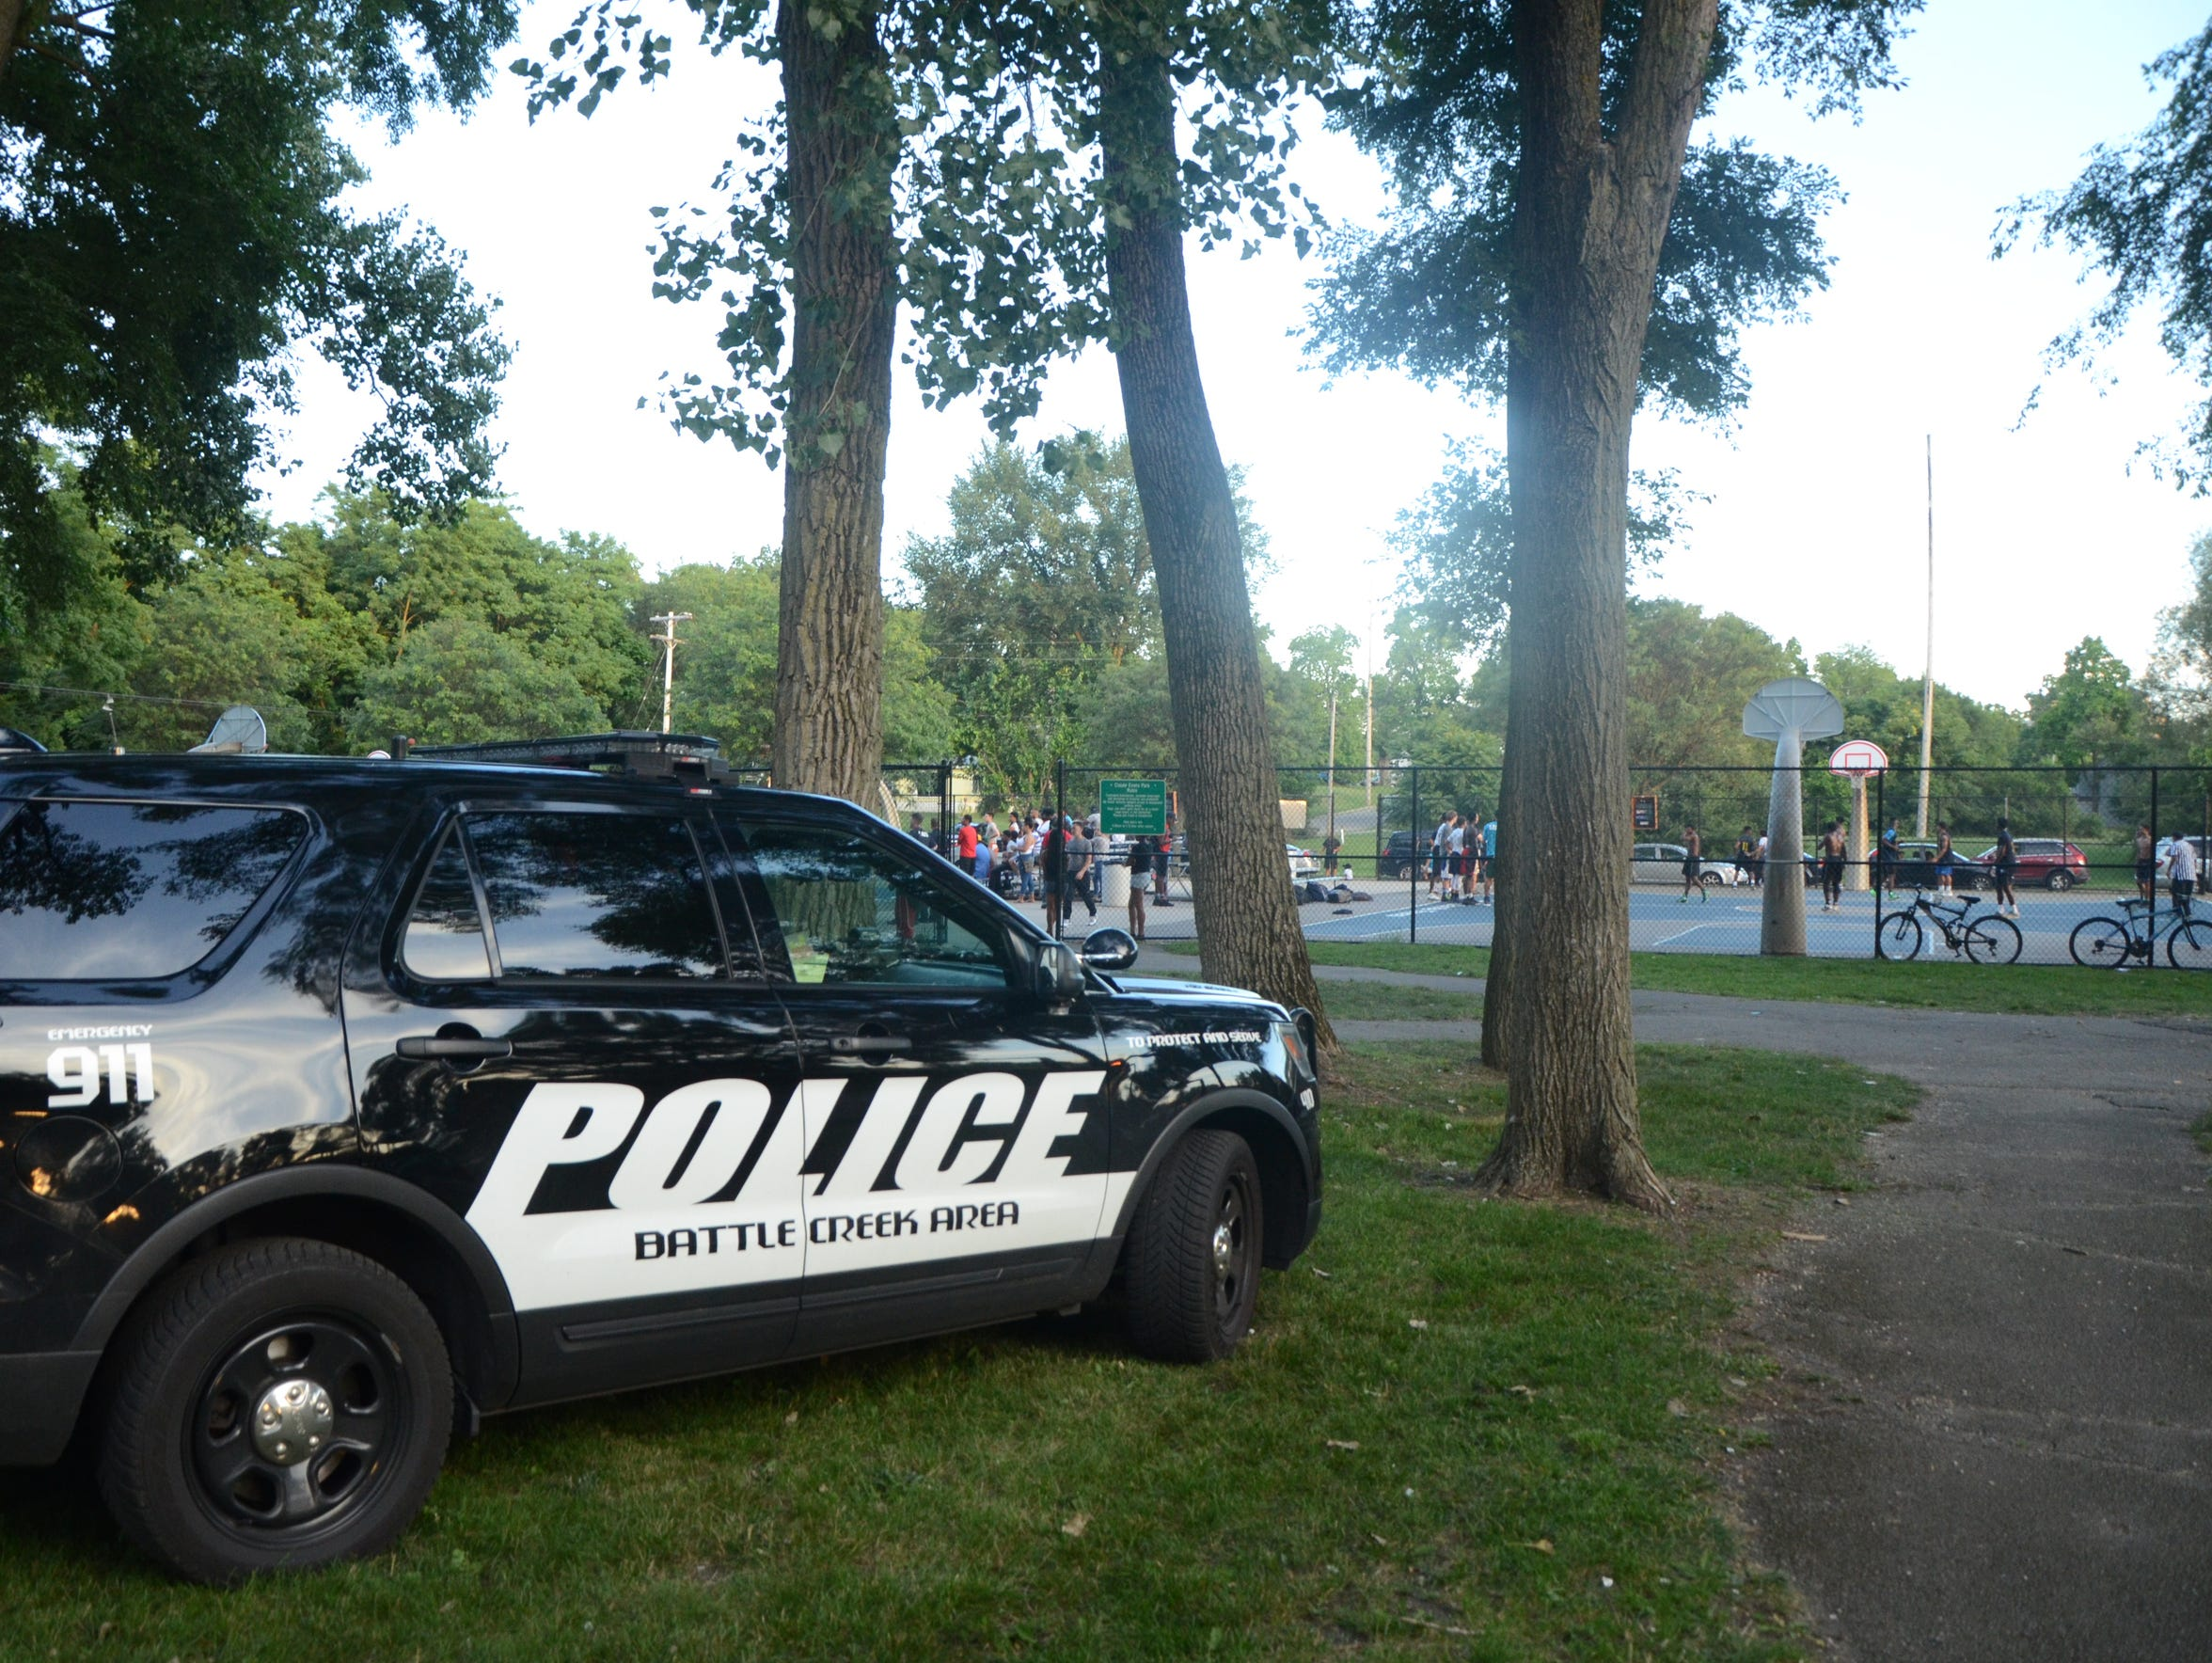 A police cruiser is parked on the grass outside of